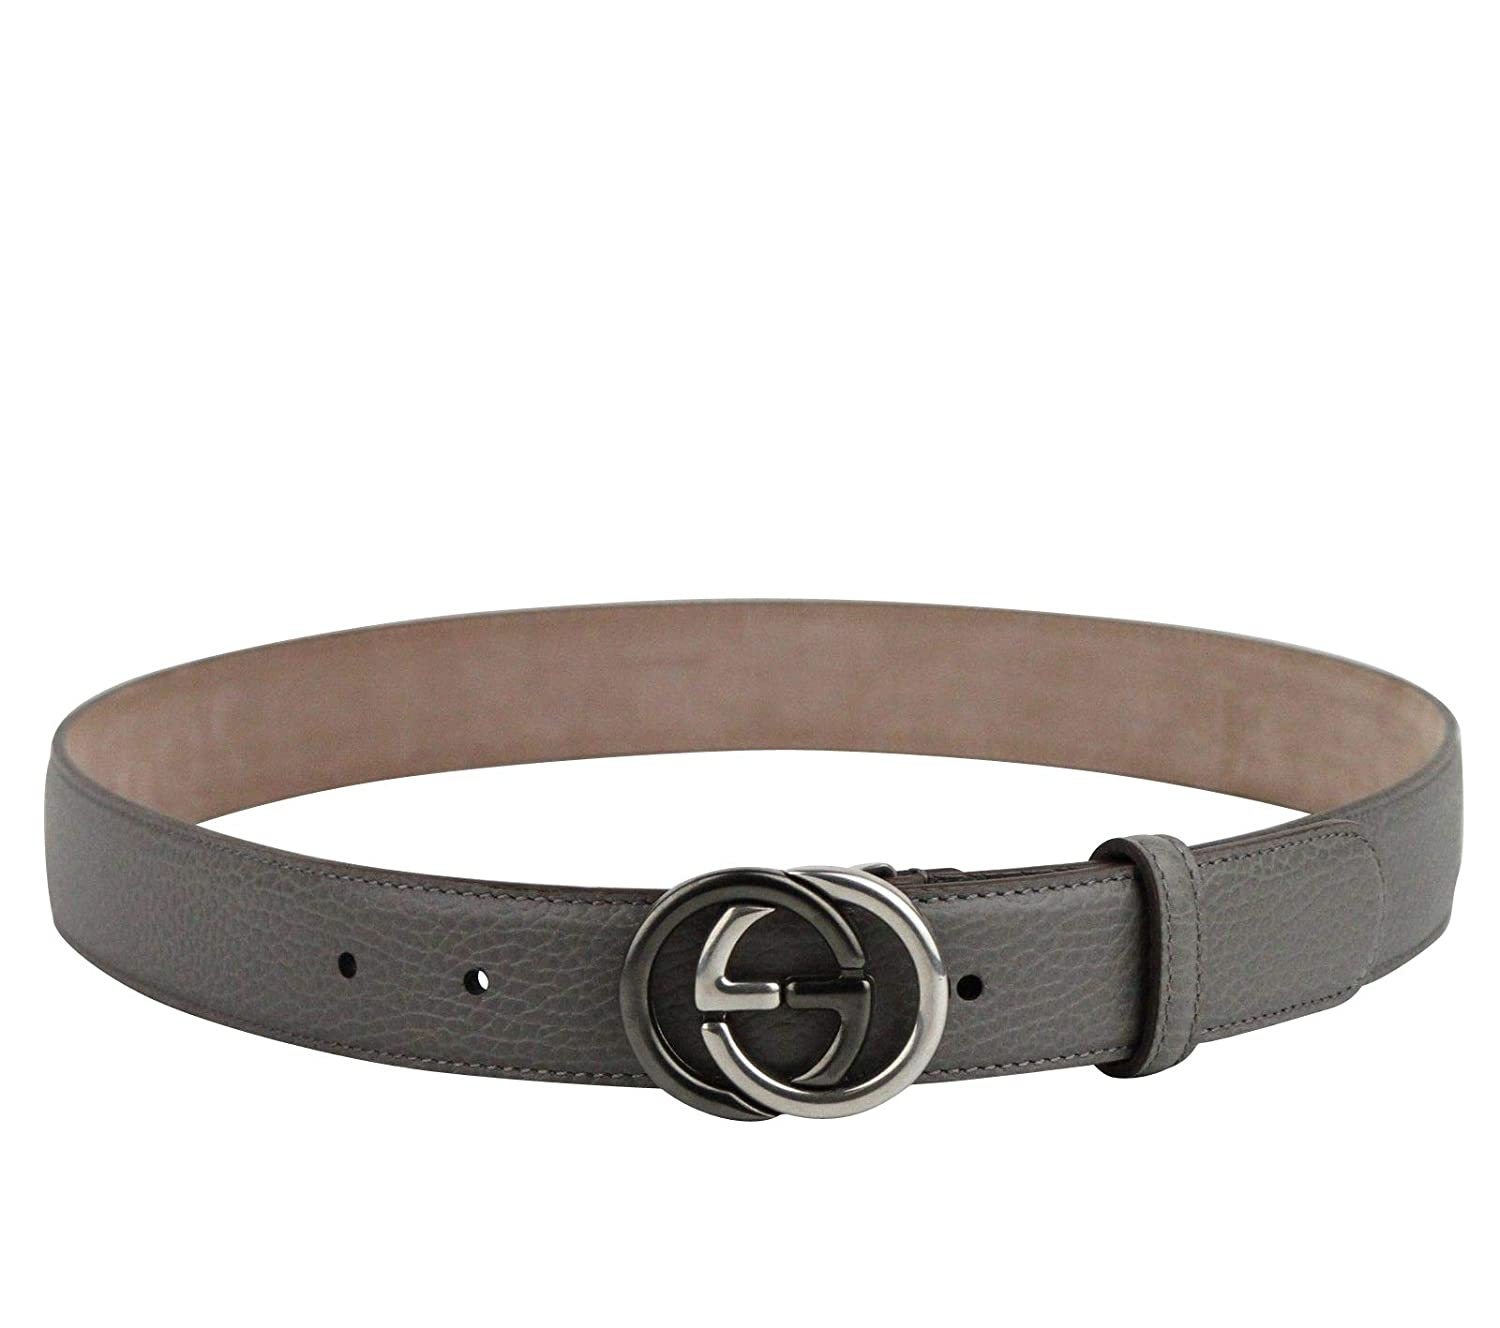 6983ebe0581 Amazon.com  New Gucci Men s Grey Leather Belt with GG Buckle 295704 1226  (110 44)  Clothing